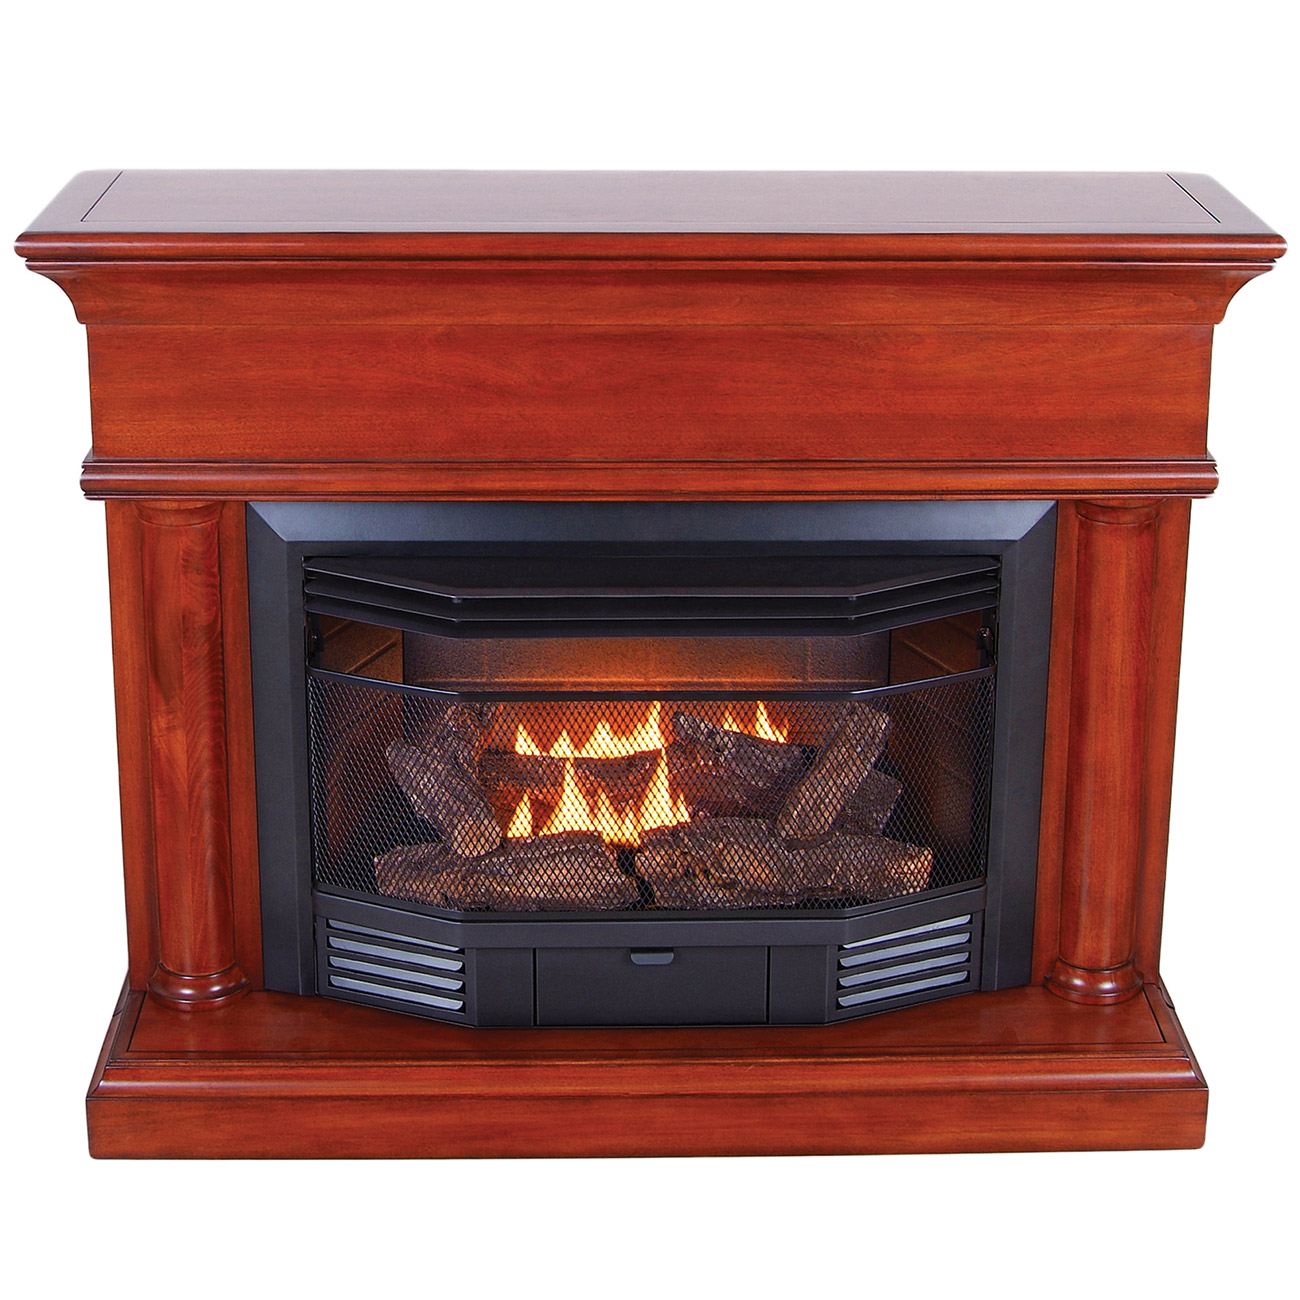 Ventless Fireplace: Ventless Fireplace For Model #BD23TCC-7-HC